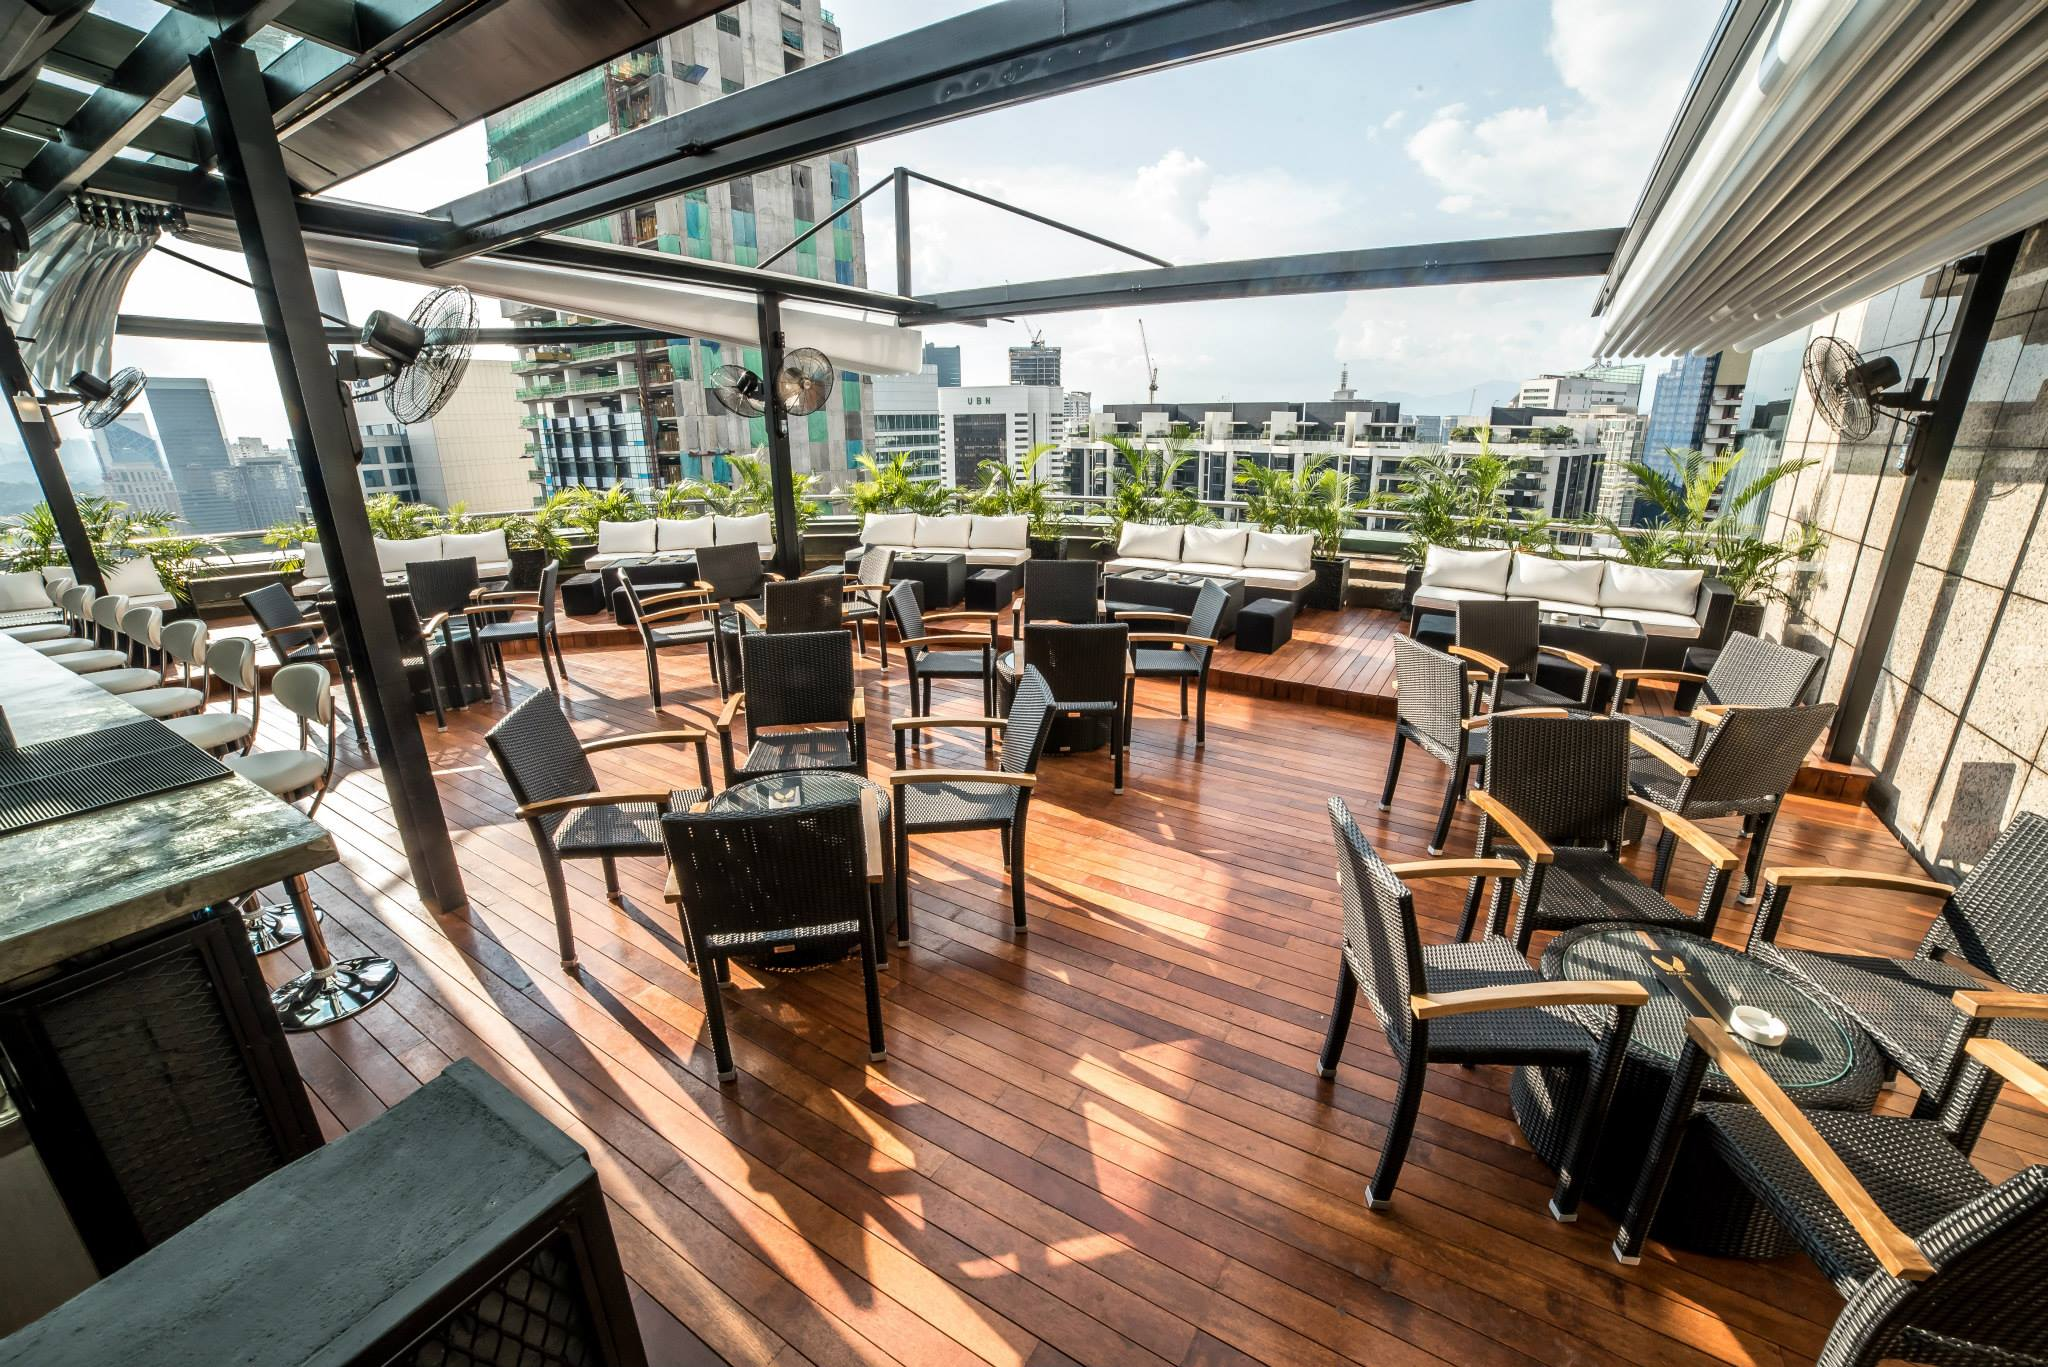 Elysium Bar & Terrace - 16 of The Best Bars to Check Out in Kuala Lumpur for 2018!